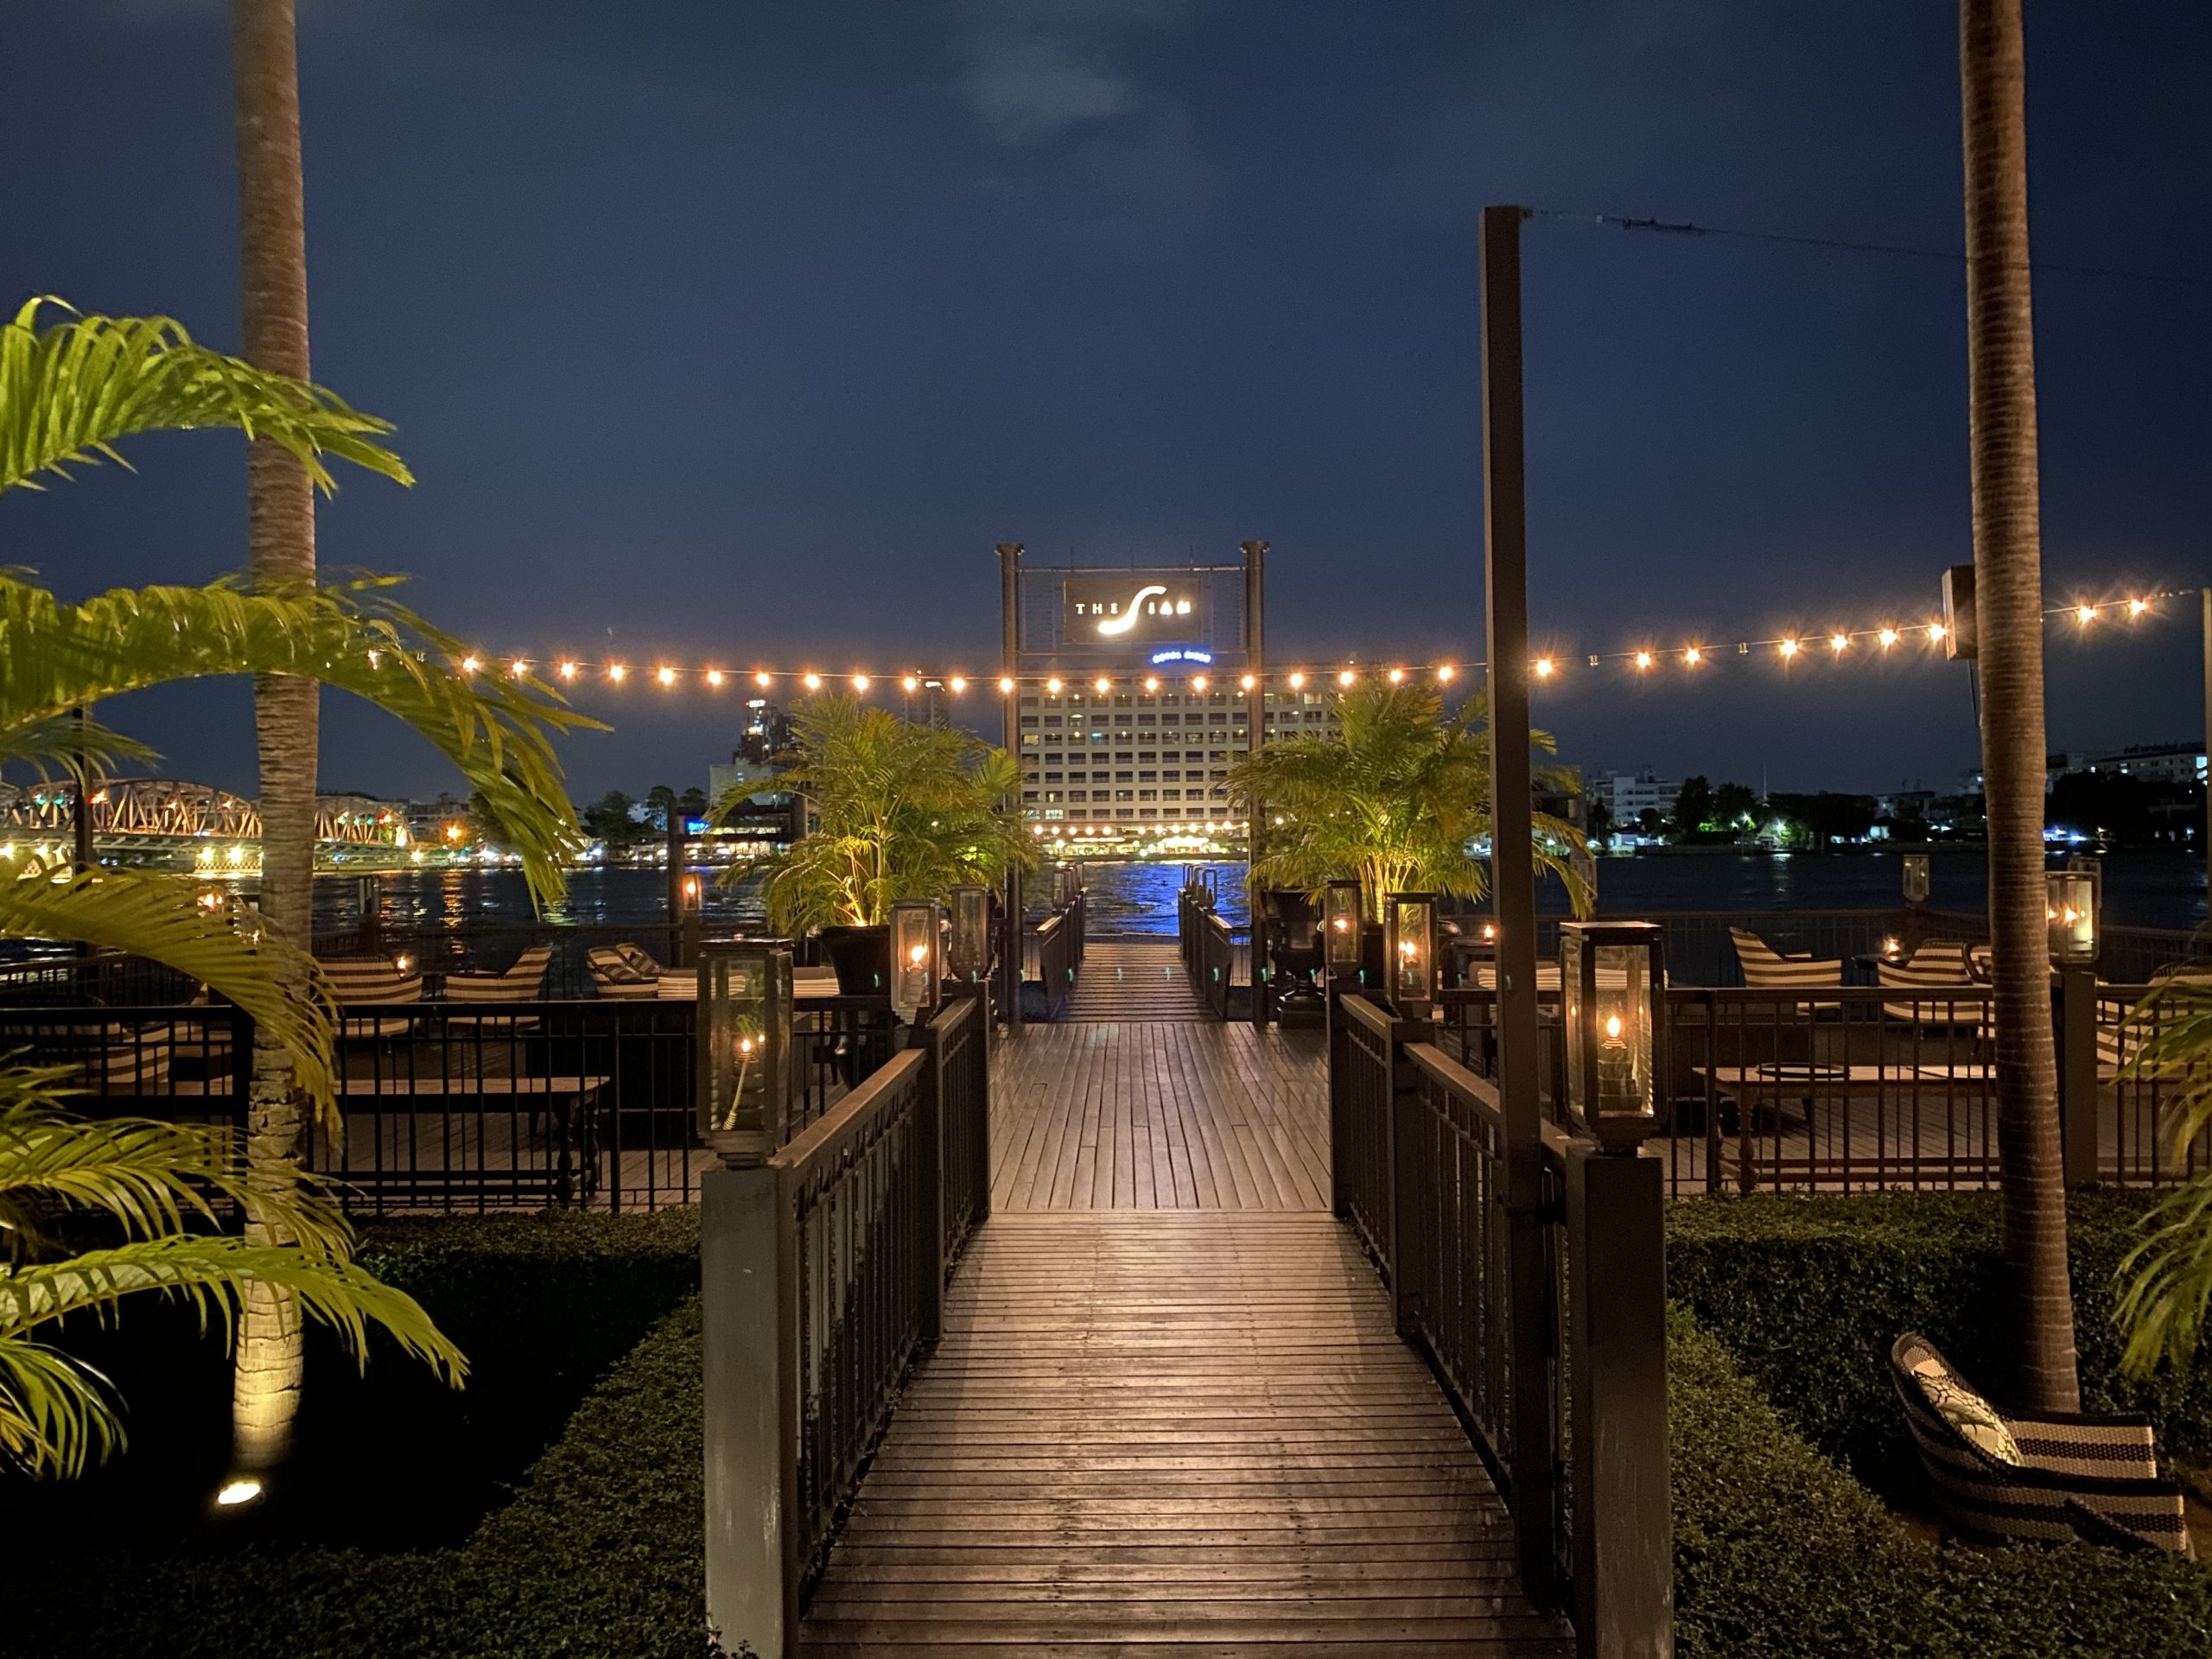 The Siam hotel review